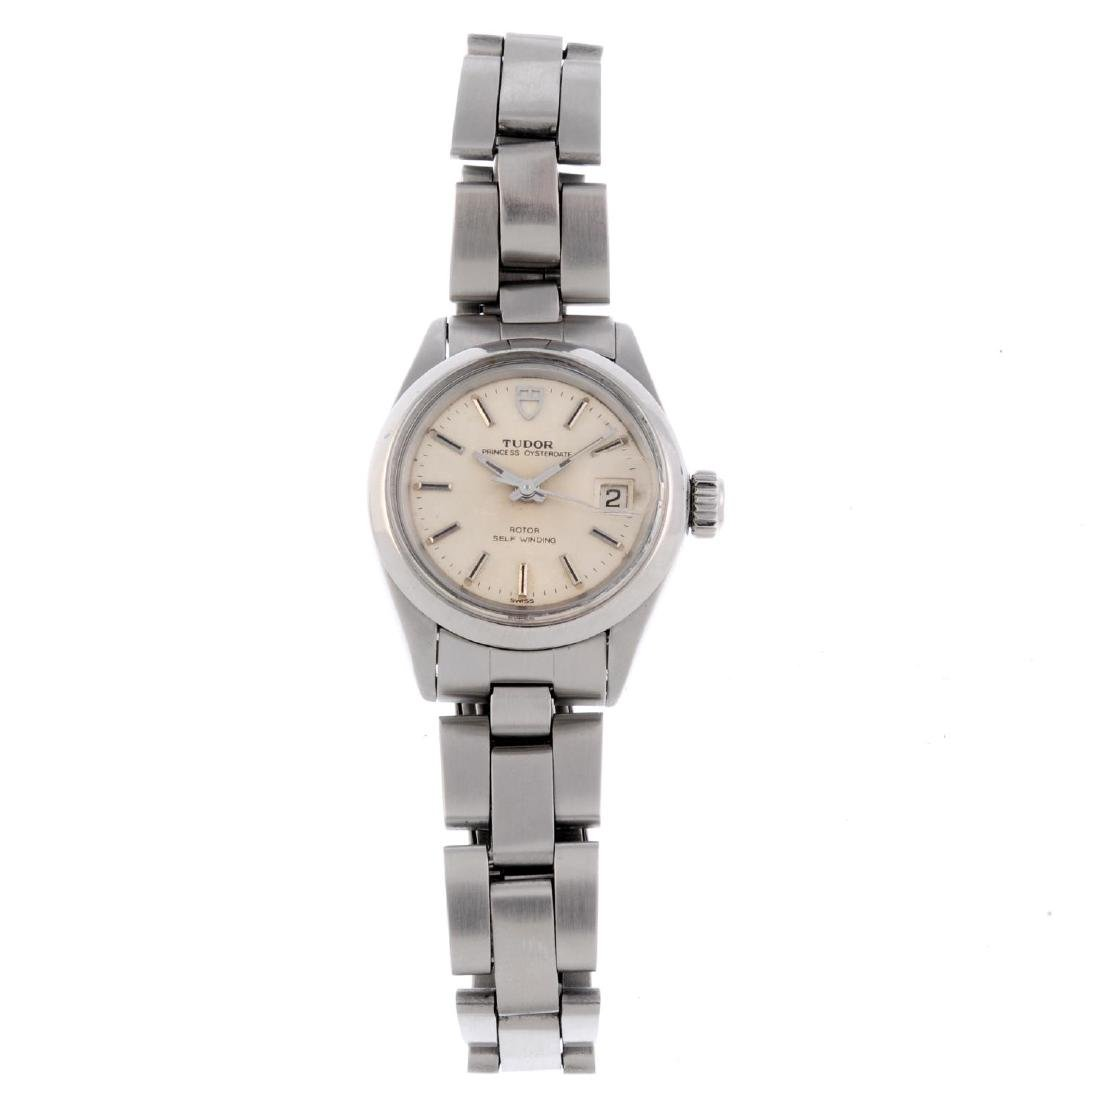 TUDOR - a lady's Princess Oysterdate bracelet watch.